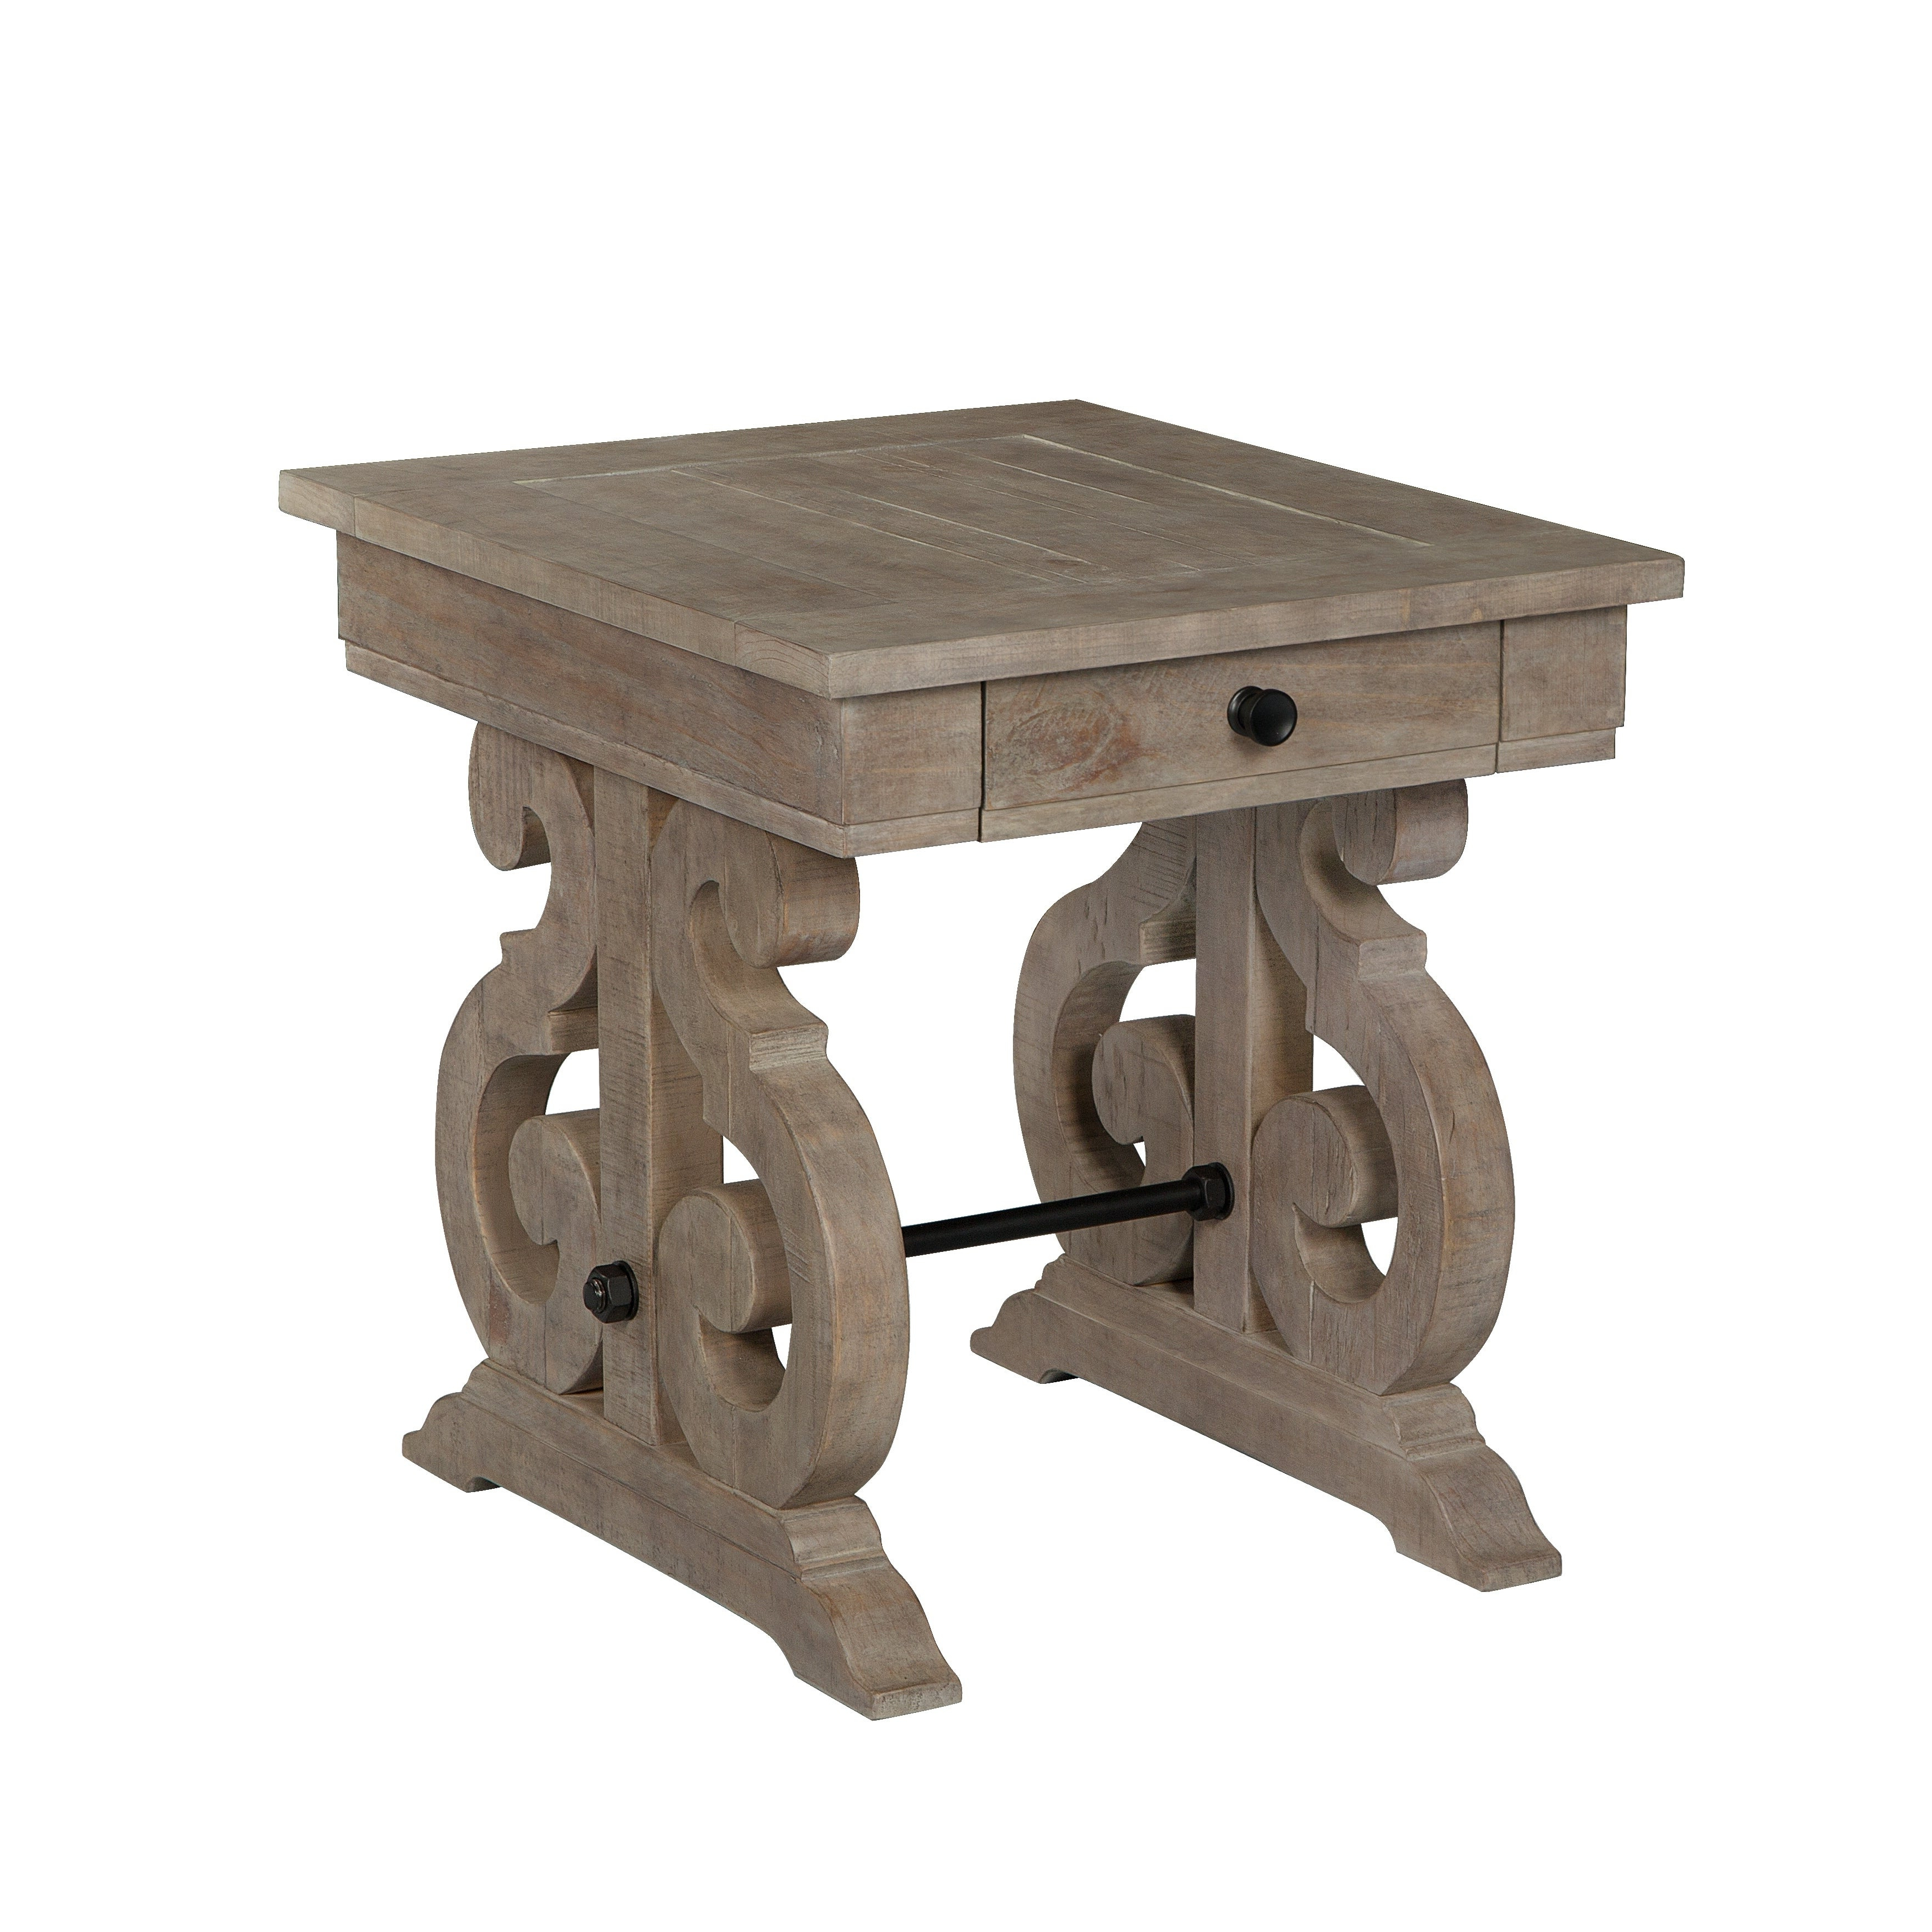 Tinley Park Traditional Dove Tail Grey End Table Pertaining To Well Known Tinley Park Traditional Dove Tail Grey Coffee Tables (View 10 of 20)